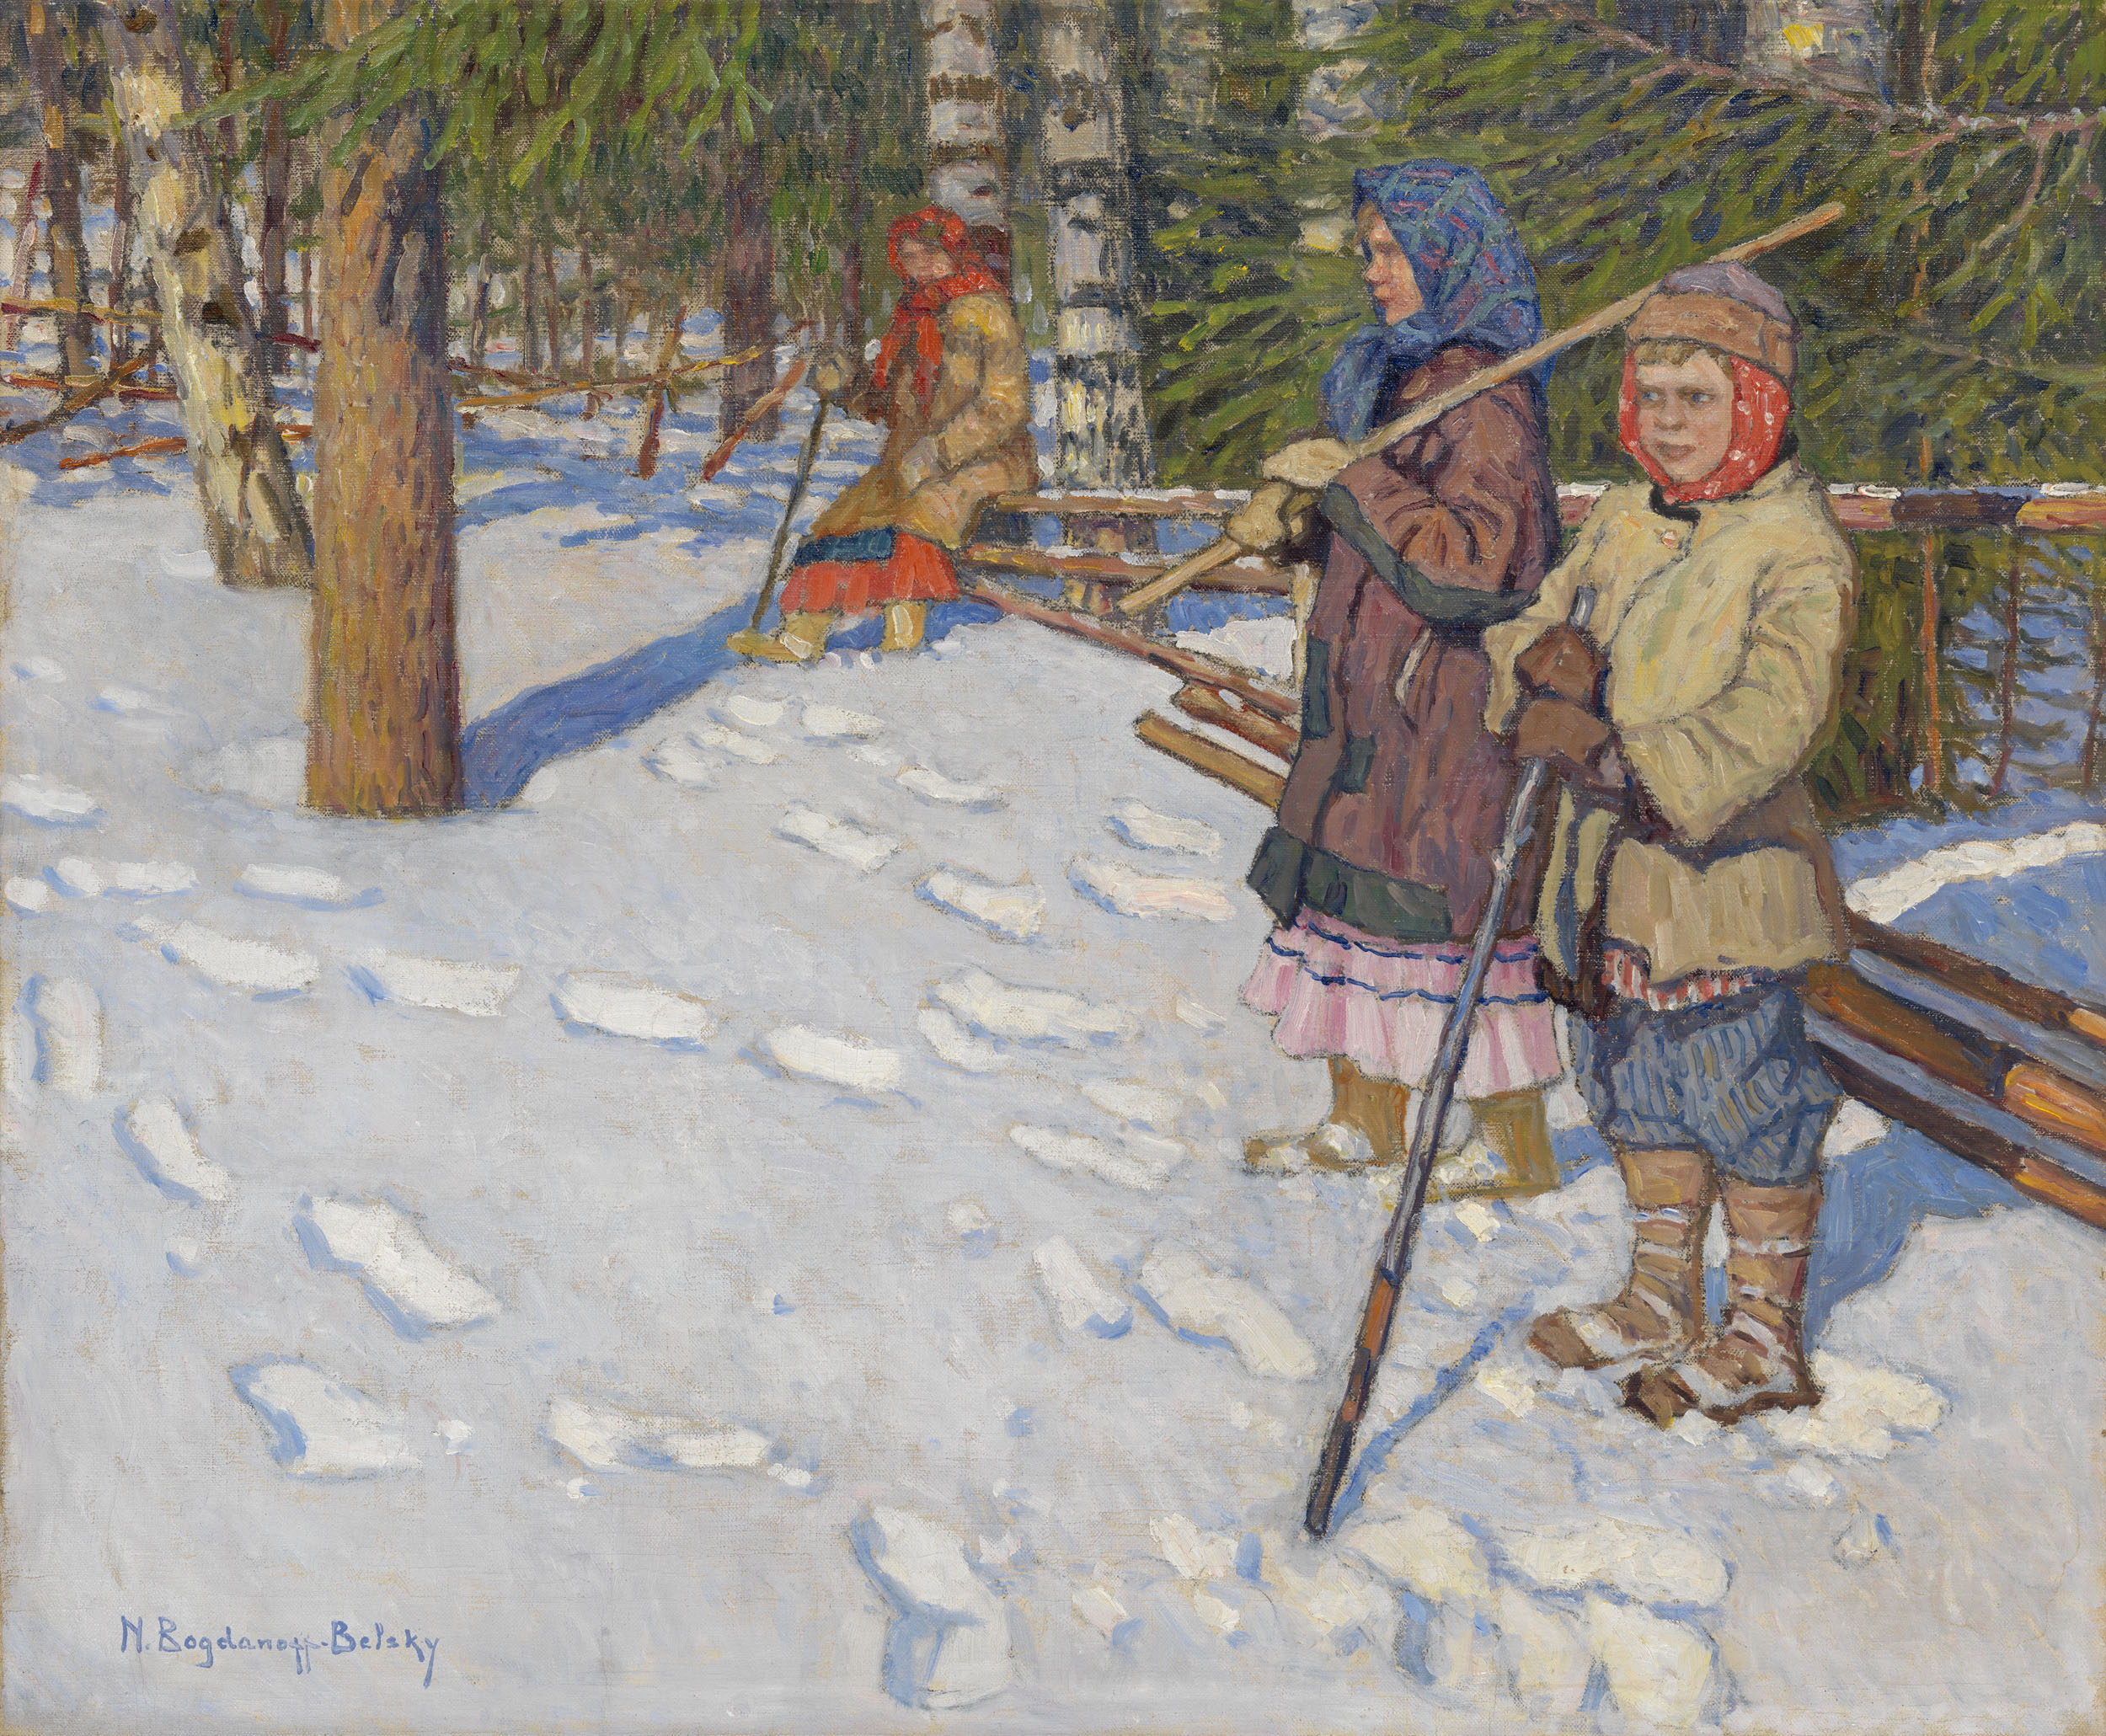 BOGDANOV-BELSKY, NIKOLAI Children in a Wintry Forest